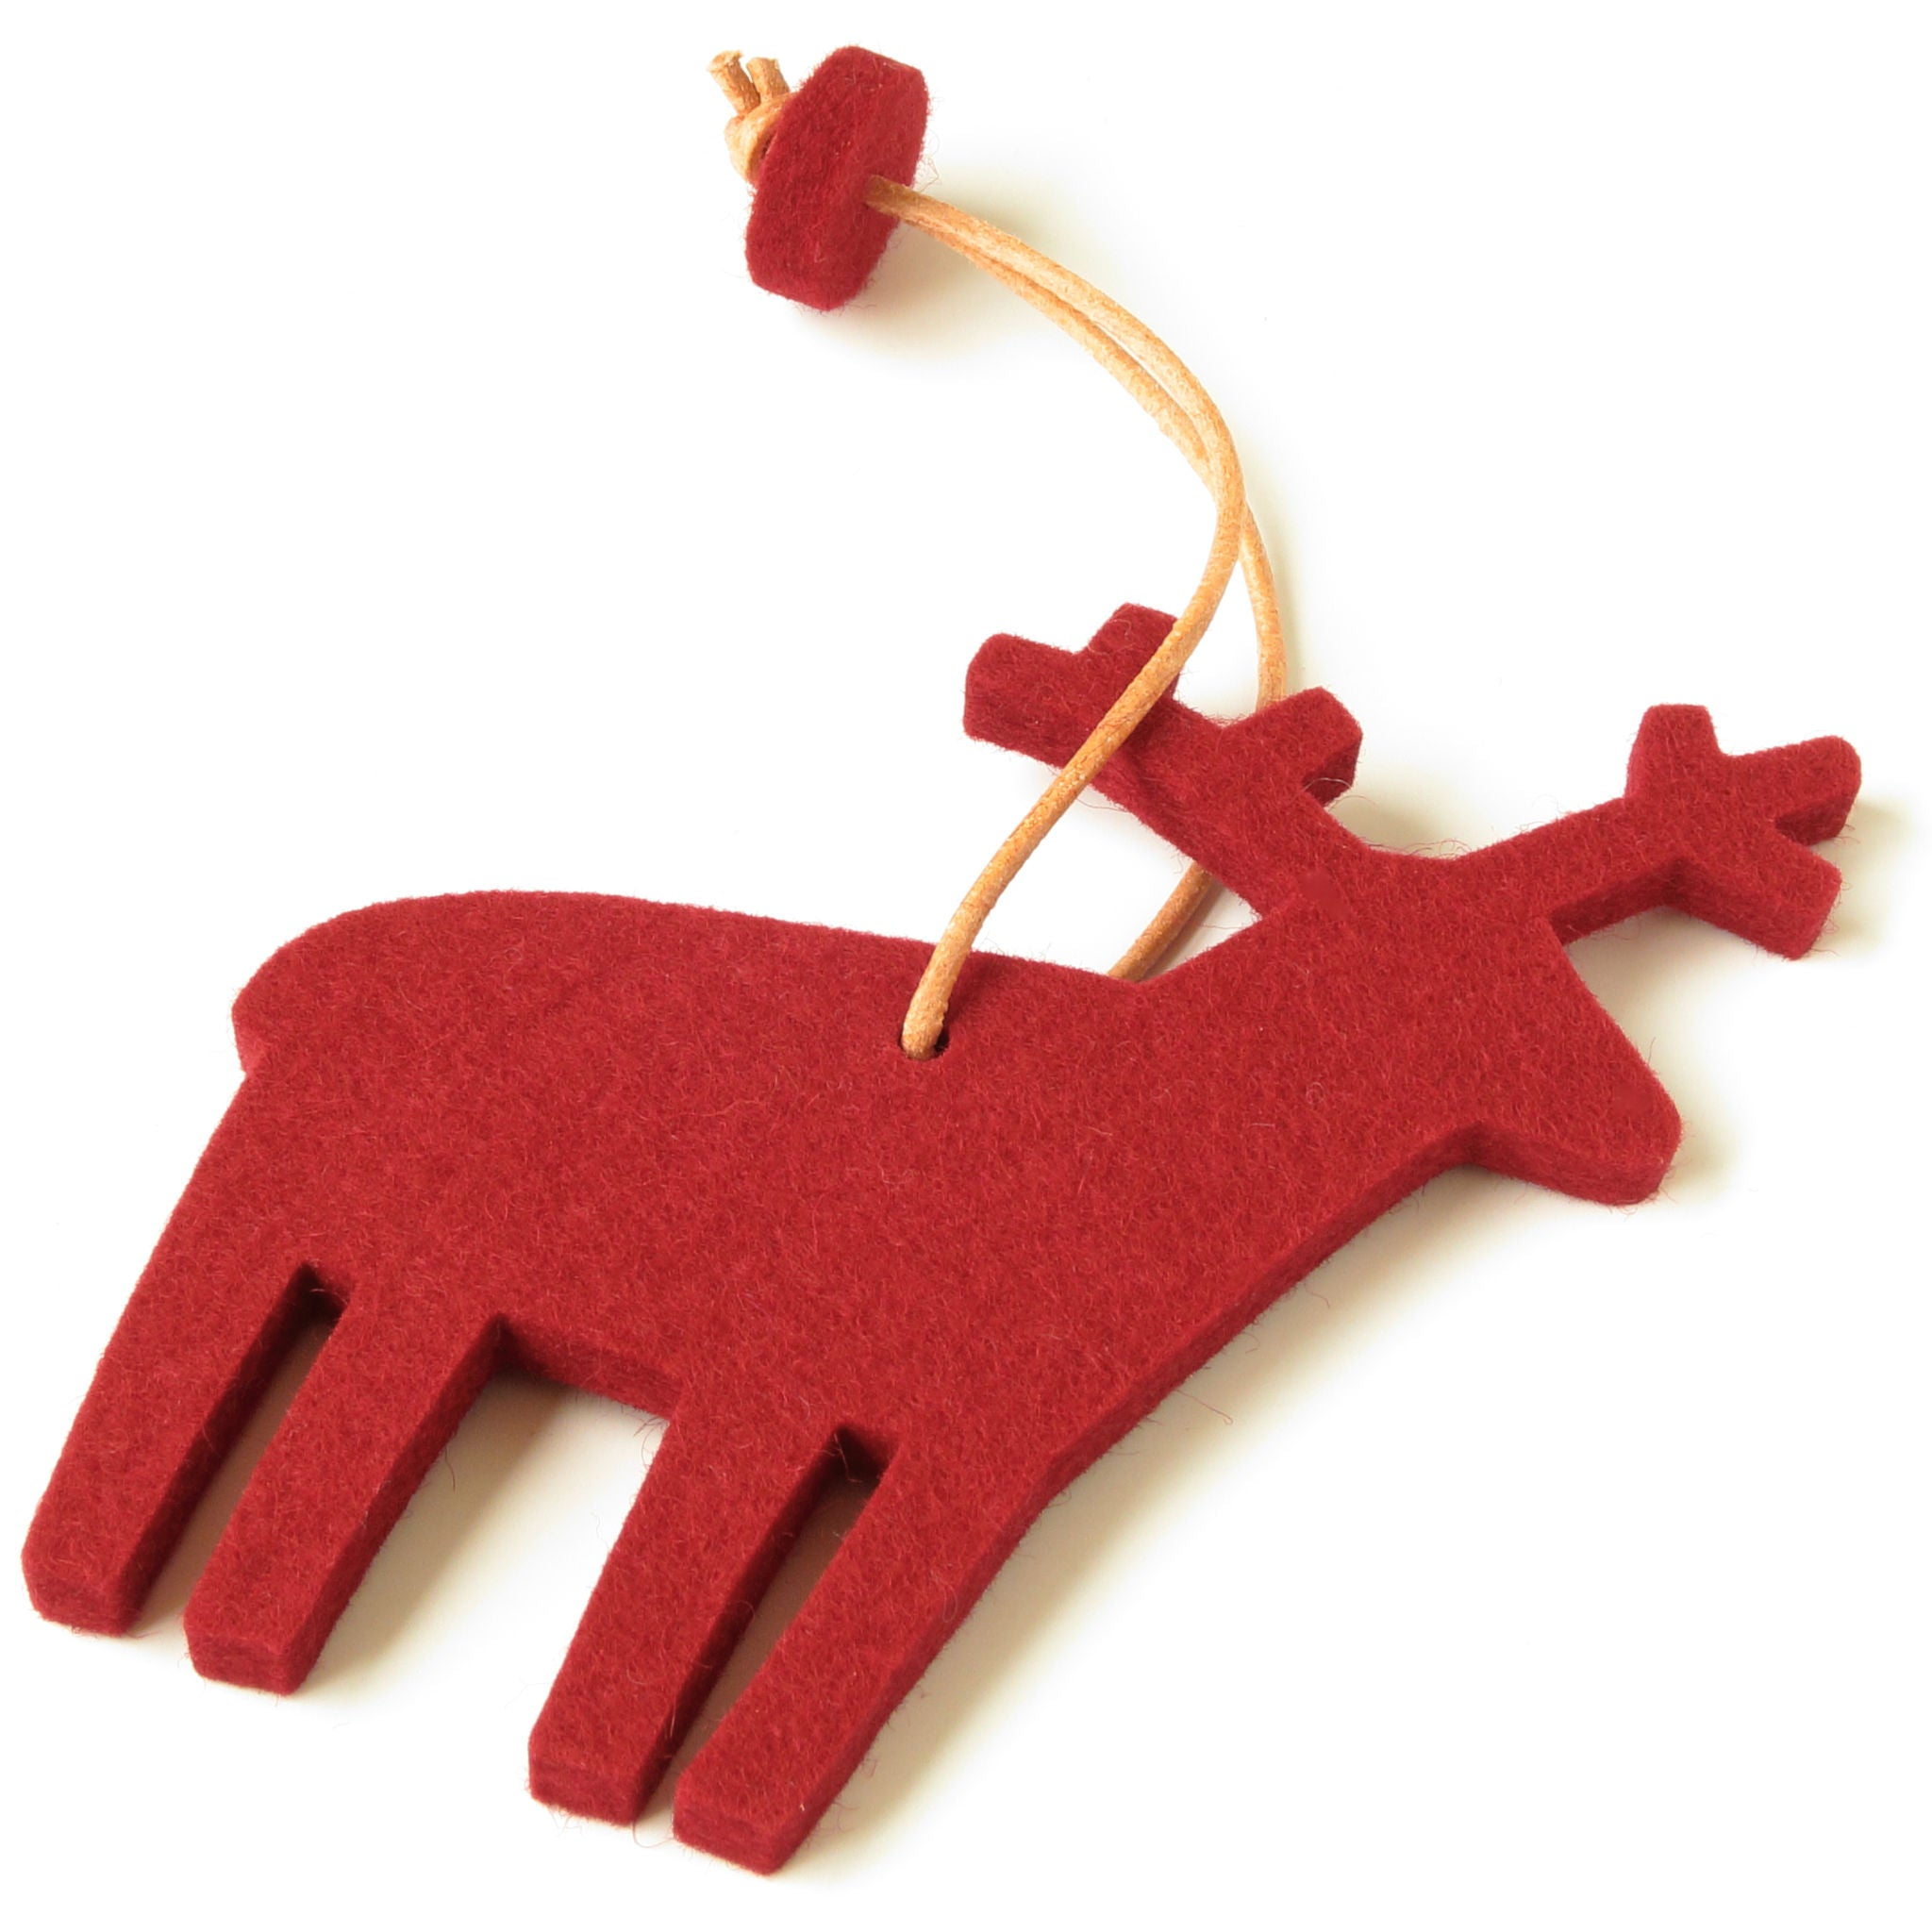 Decorative Reindeer in Red by Hey-Sign 300601011 from Side